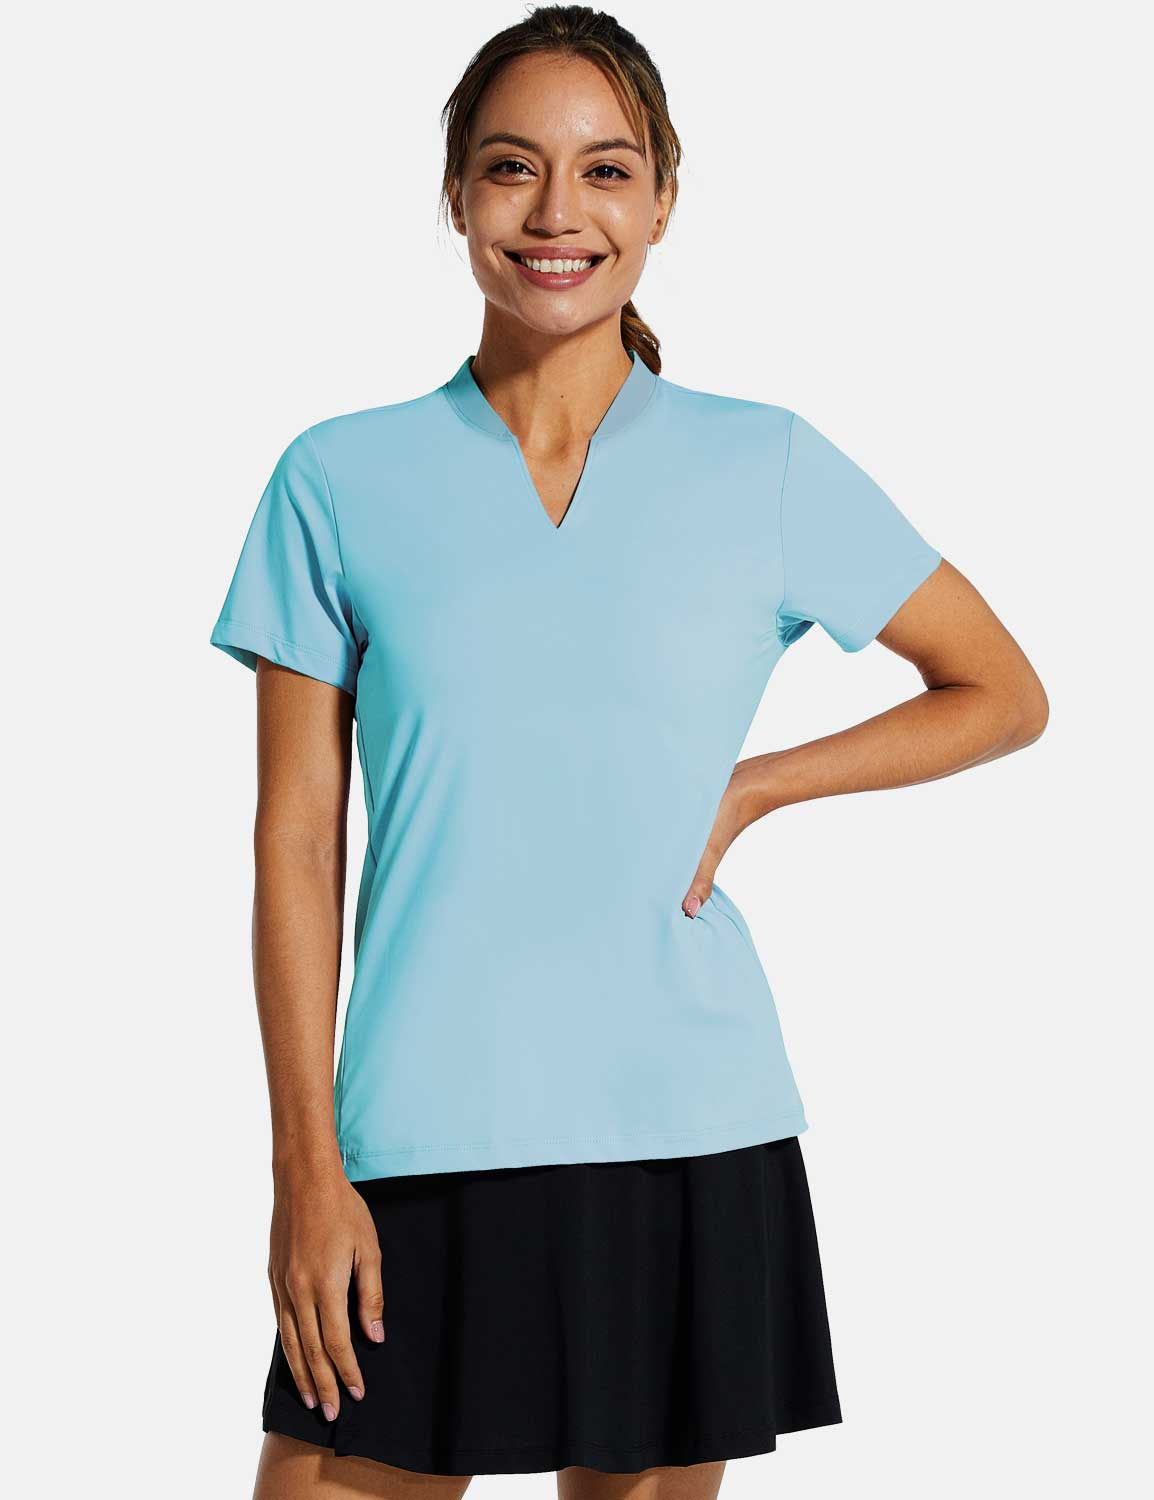 Baleaf Womens UPF50+ Short Sleeved Collarless V Neck Shirts Size Chart